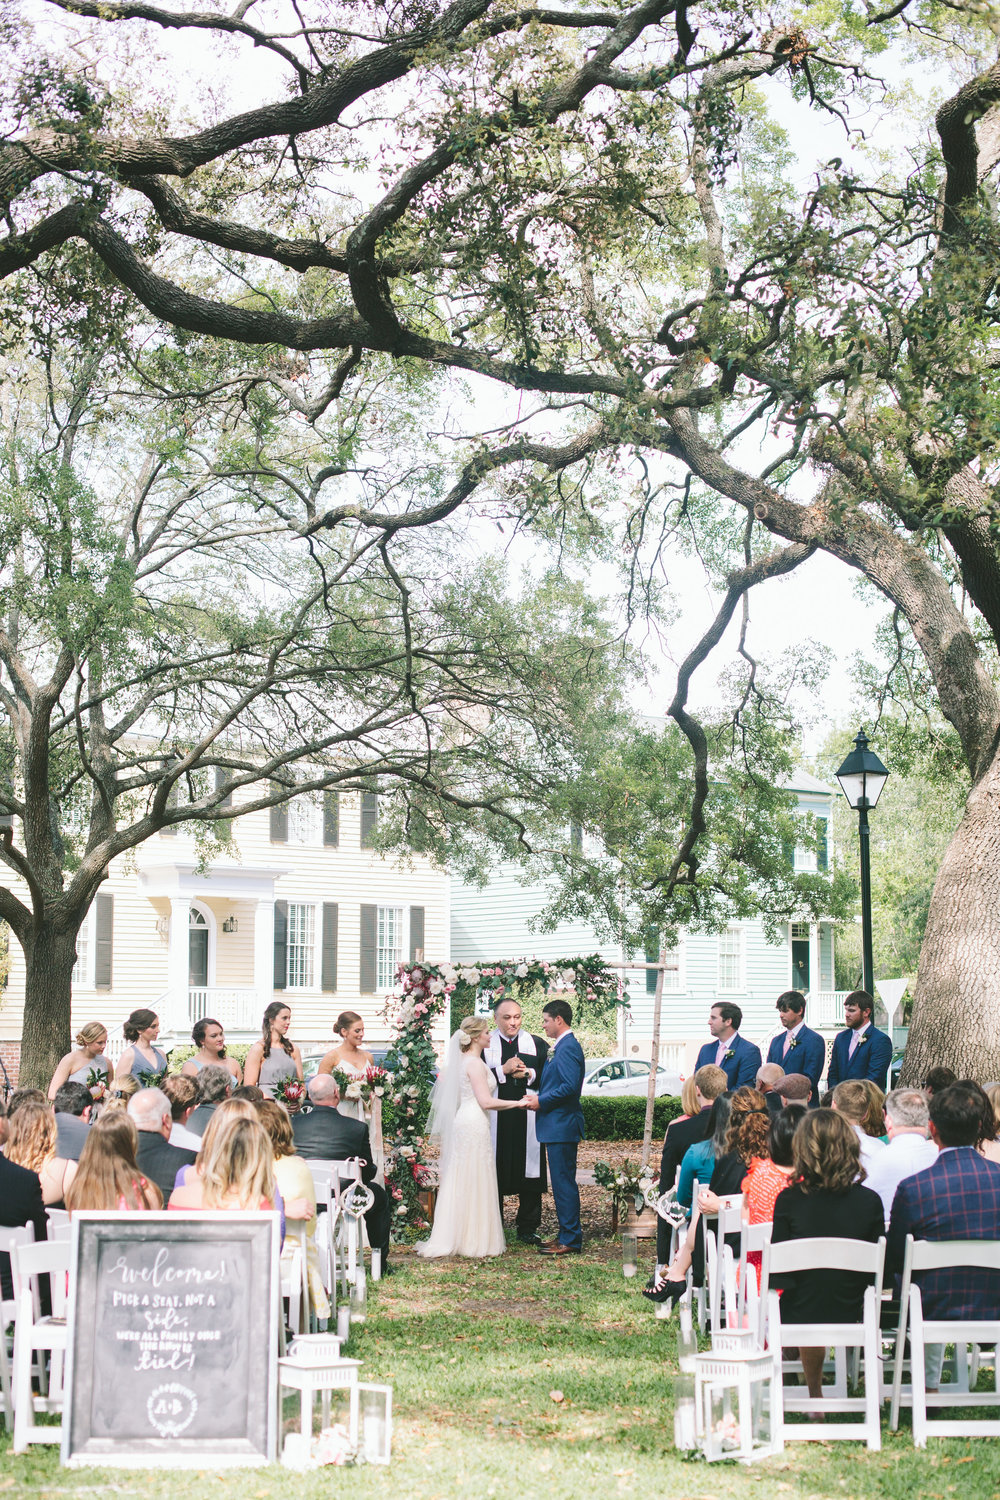 allison-blake-ivory-and-beau-bridal-boutique-savannah-wedding-planner-savannah-florist-jenna-davis-photography-cha-bella-wedding-warren-square-wedding-savannah-square-wedding-savannah-bridal-savannah-weddings-gettin-ready-37.jpg